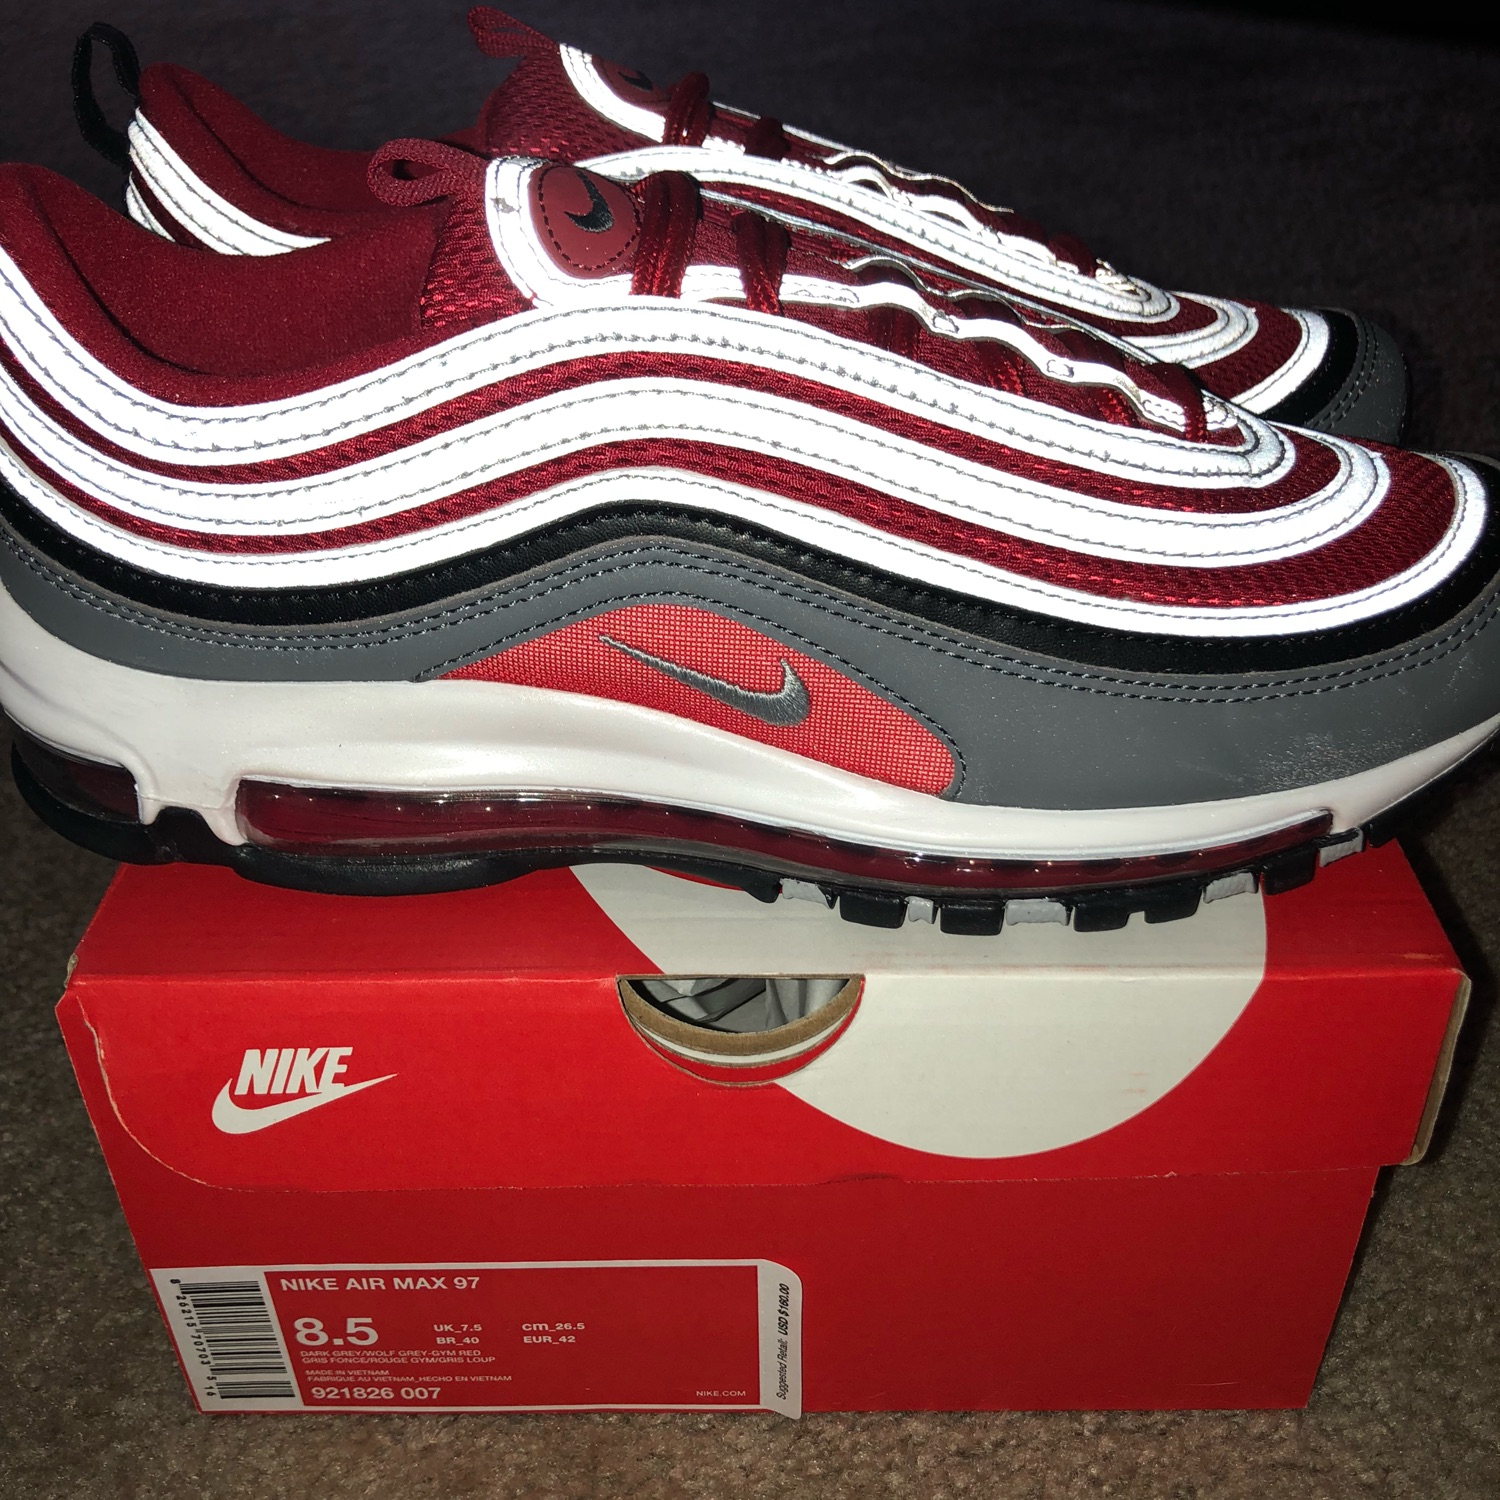 Nike Air Max 97 Gym Red